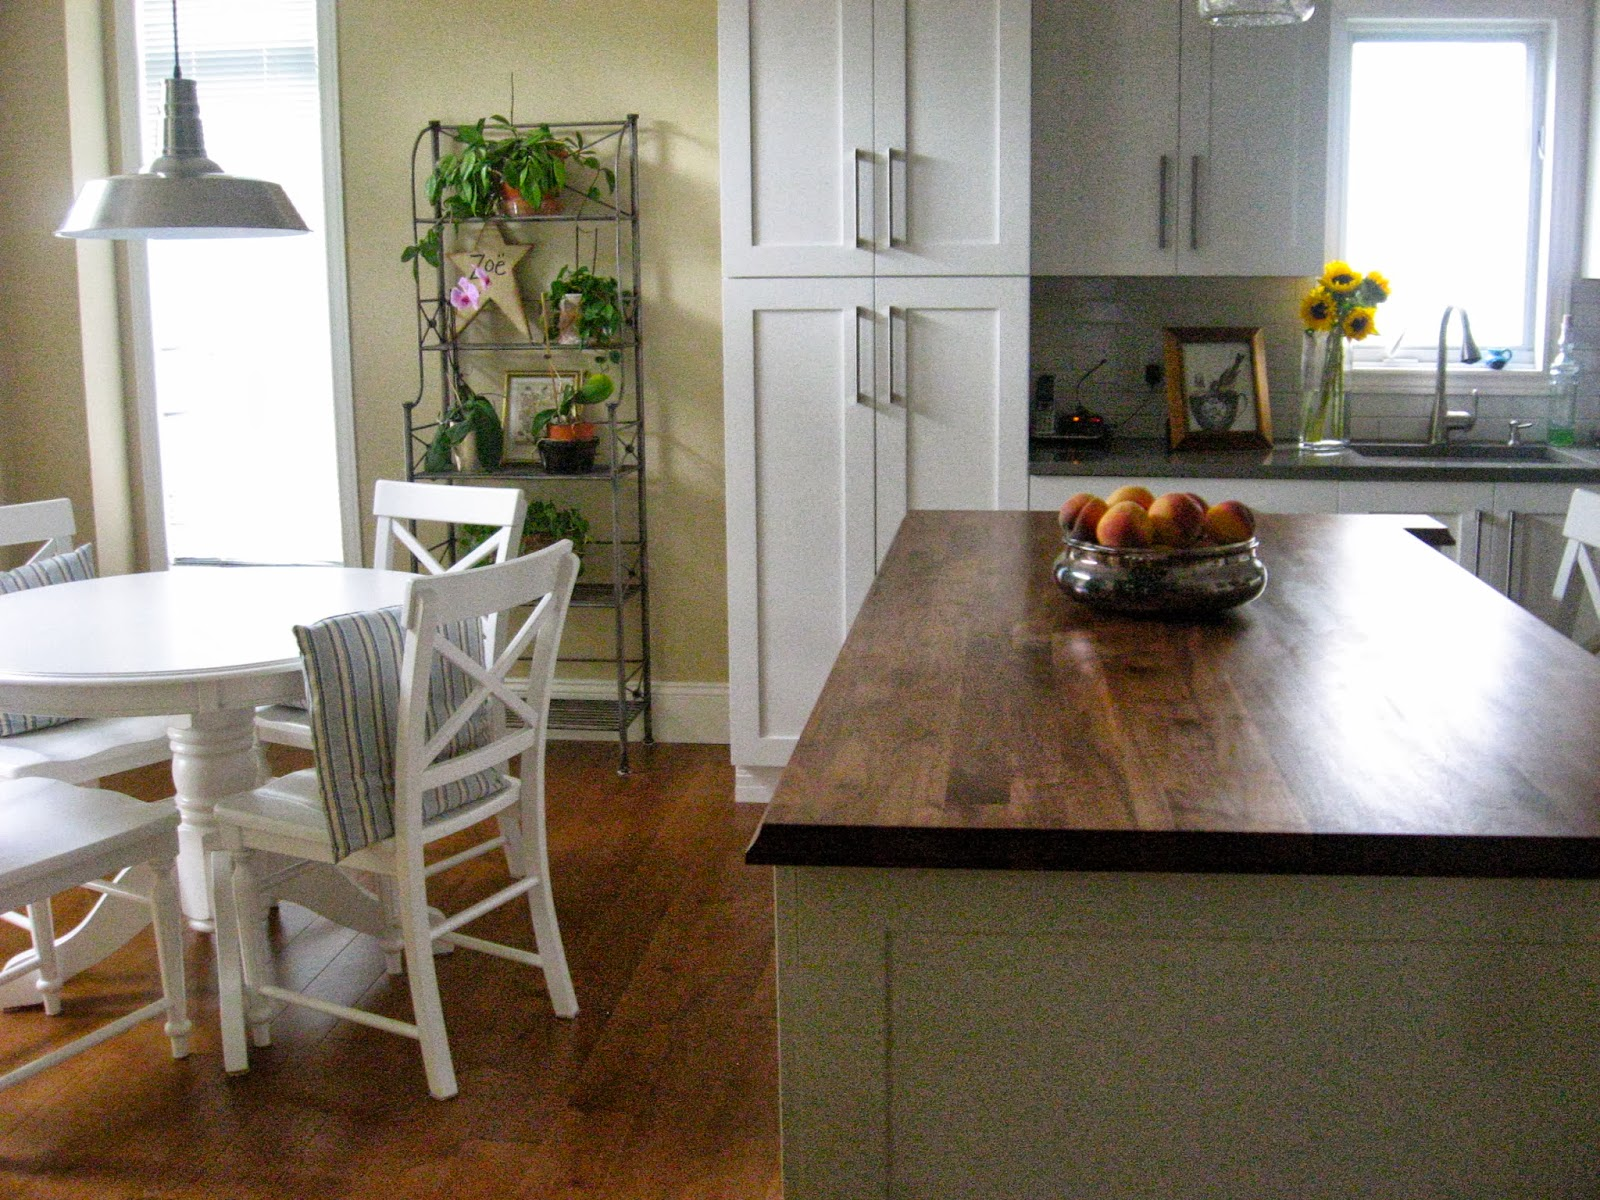 Zone Ottawa Furniture East End Girl Kitchen Reno The Final Chapter